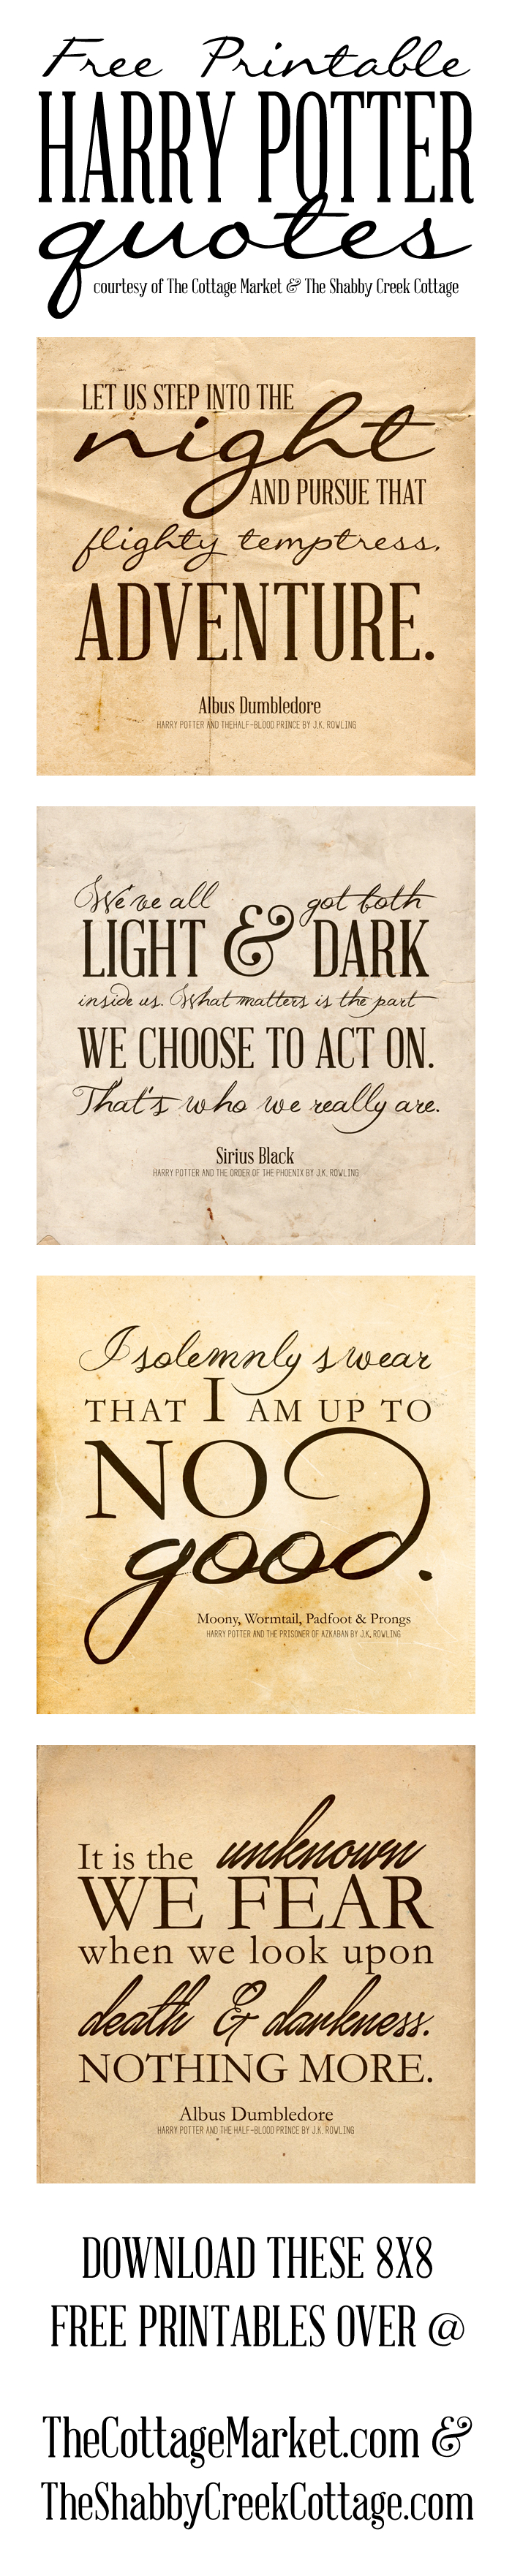 Free Harry Potter Quotes Printables   Pinterest   Harry Potter, Free - Free Printable Harry Potter Posters